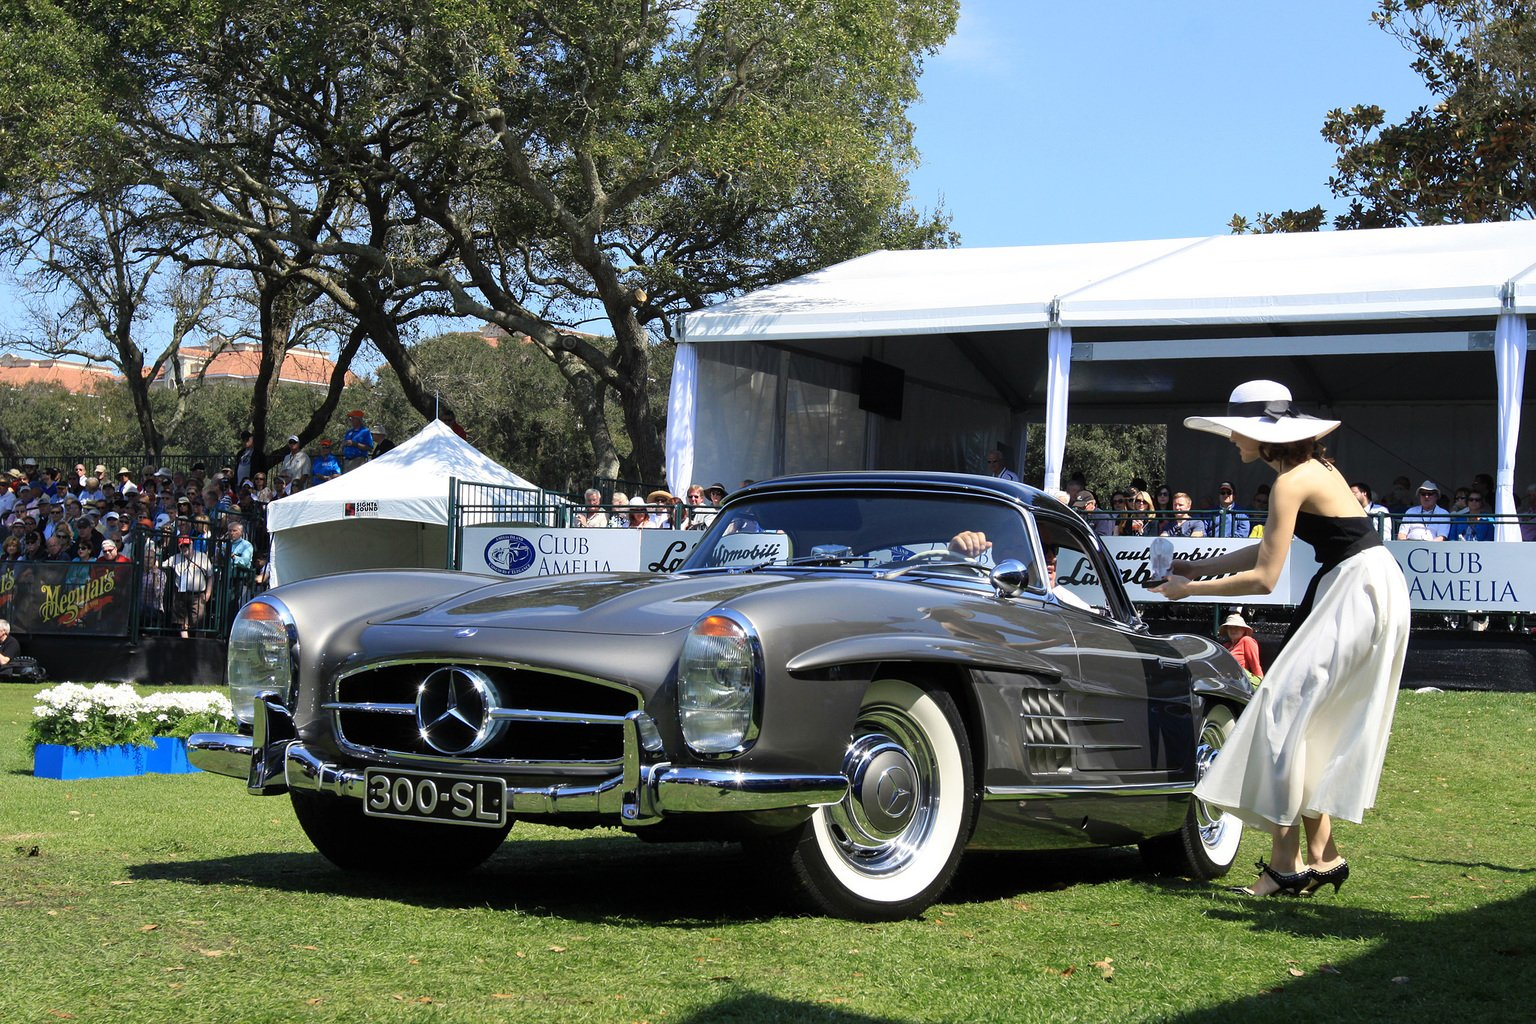 382 also 1955 Mercedes Benz 300sc Roadster additionally Index as well 2025 Mercedes Benz Ener G Force Concept Static 7 1920x1440 together with 1963 Mercedes Benz 300SL Roadster Car Vehicle Sport Supercar Sportcar Supersport Classic Retro Germany 1536x1024  2. on mercedes benz classic